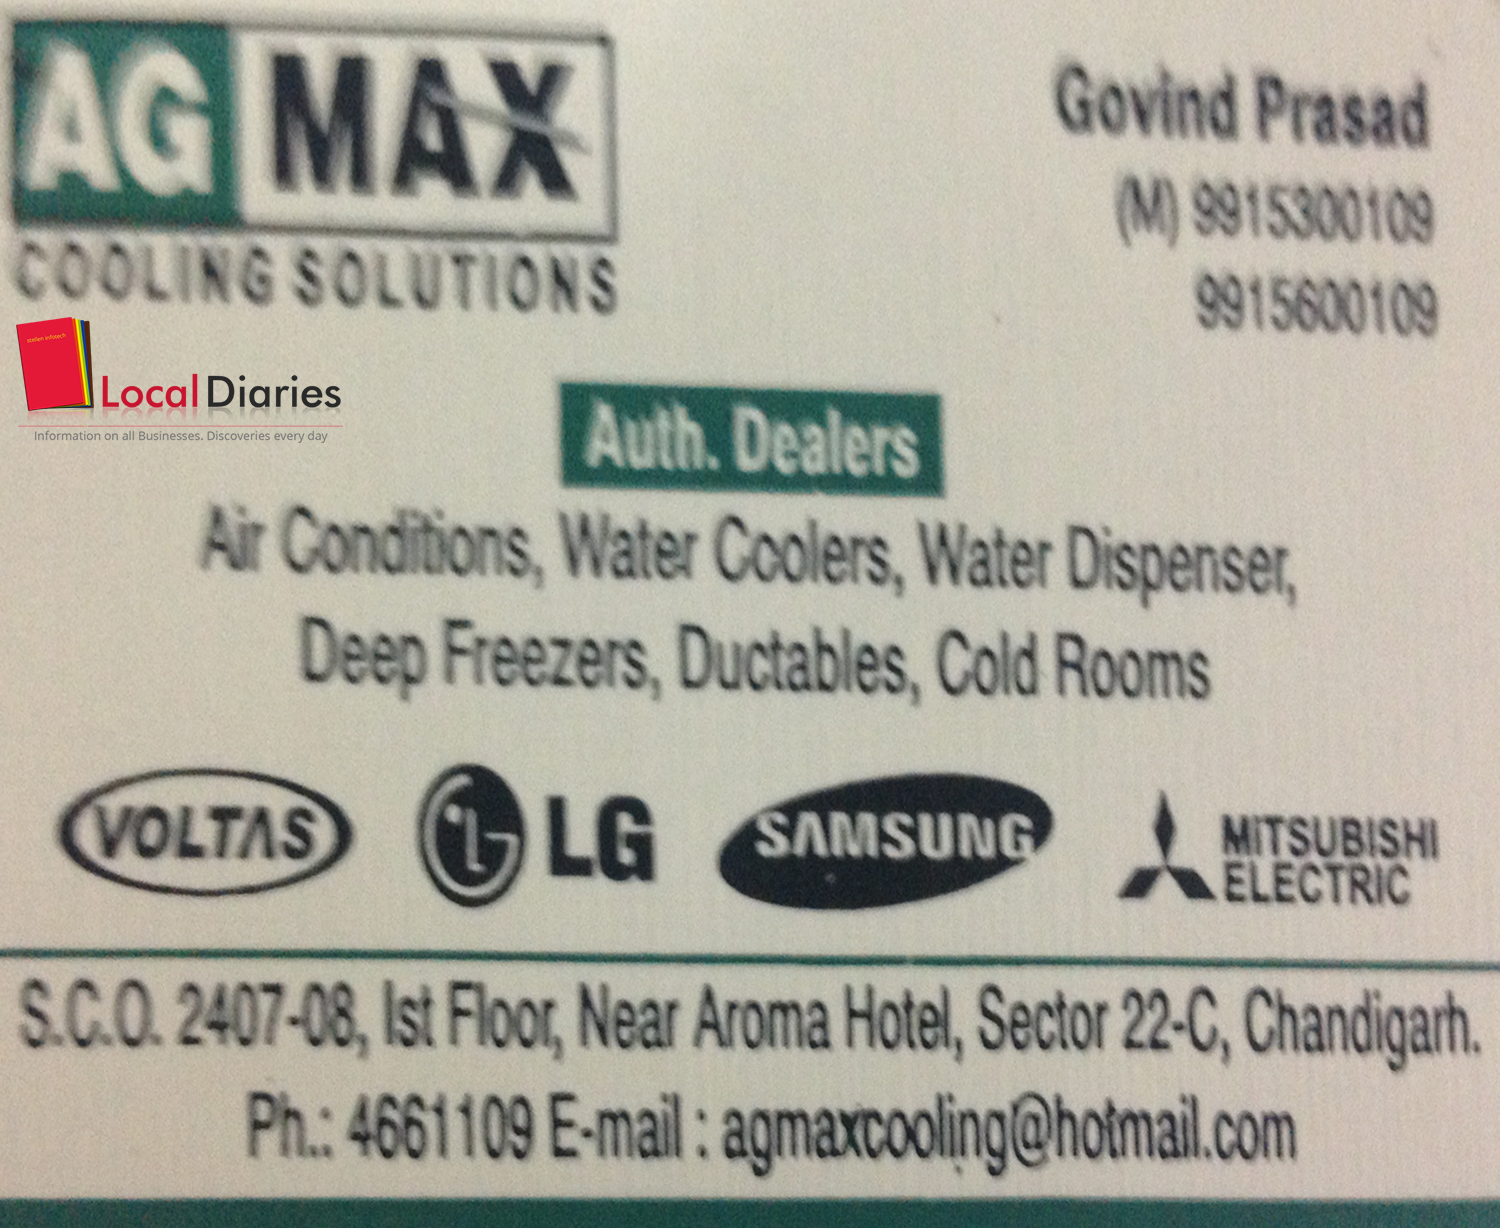 Ag Max Cooling Solutions In Sector 22 C Chandigarh